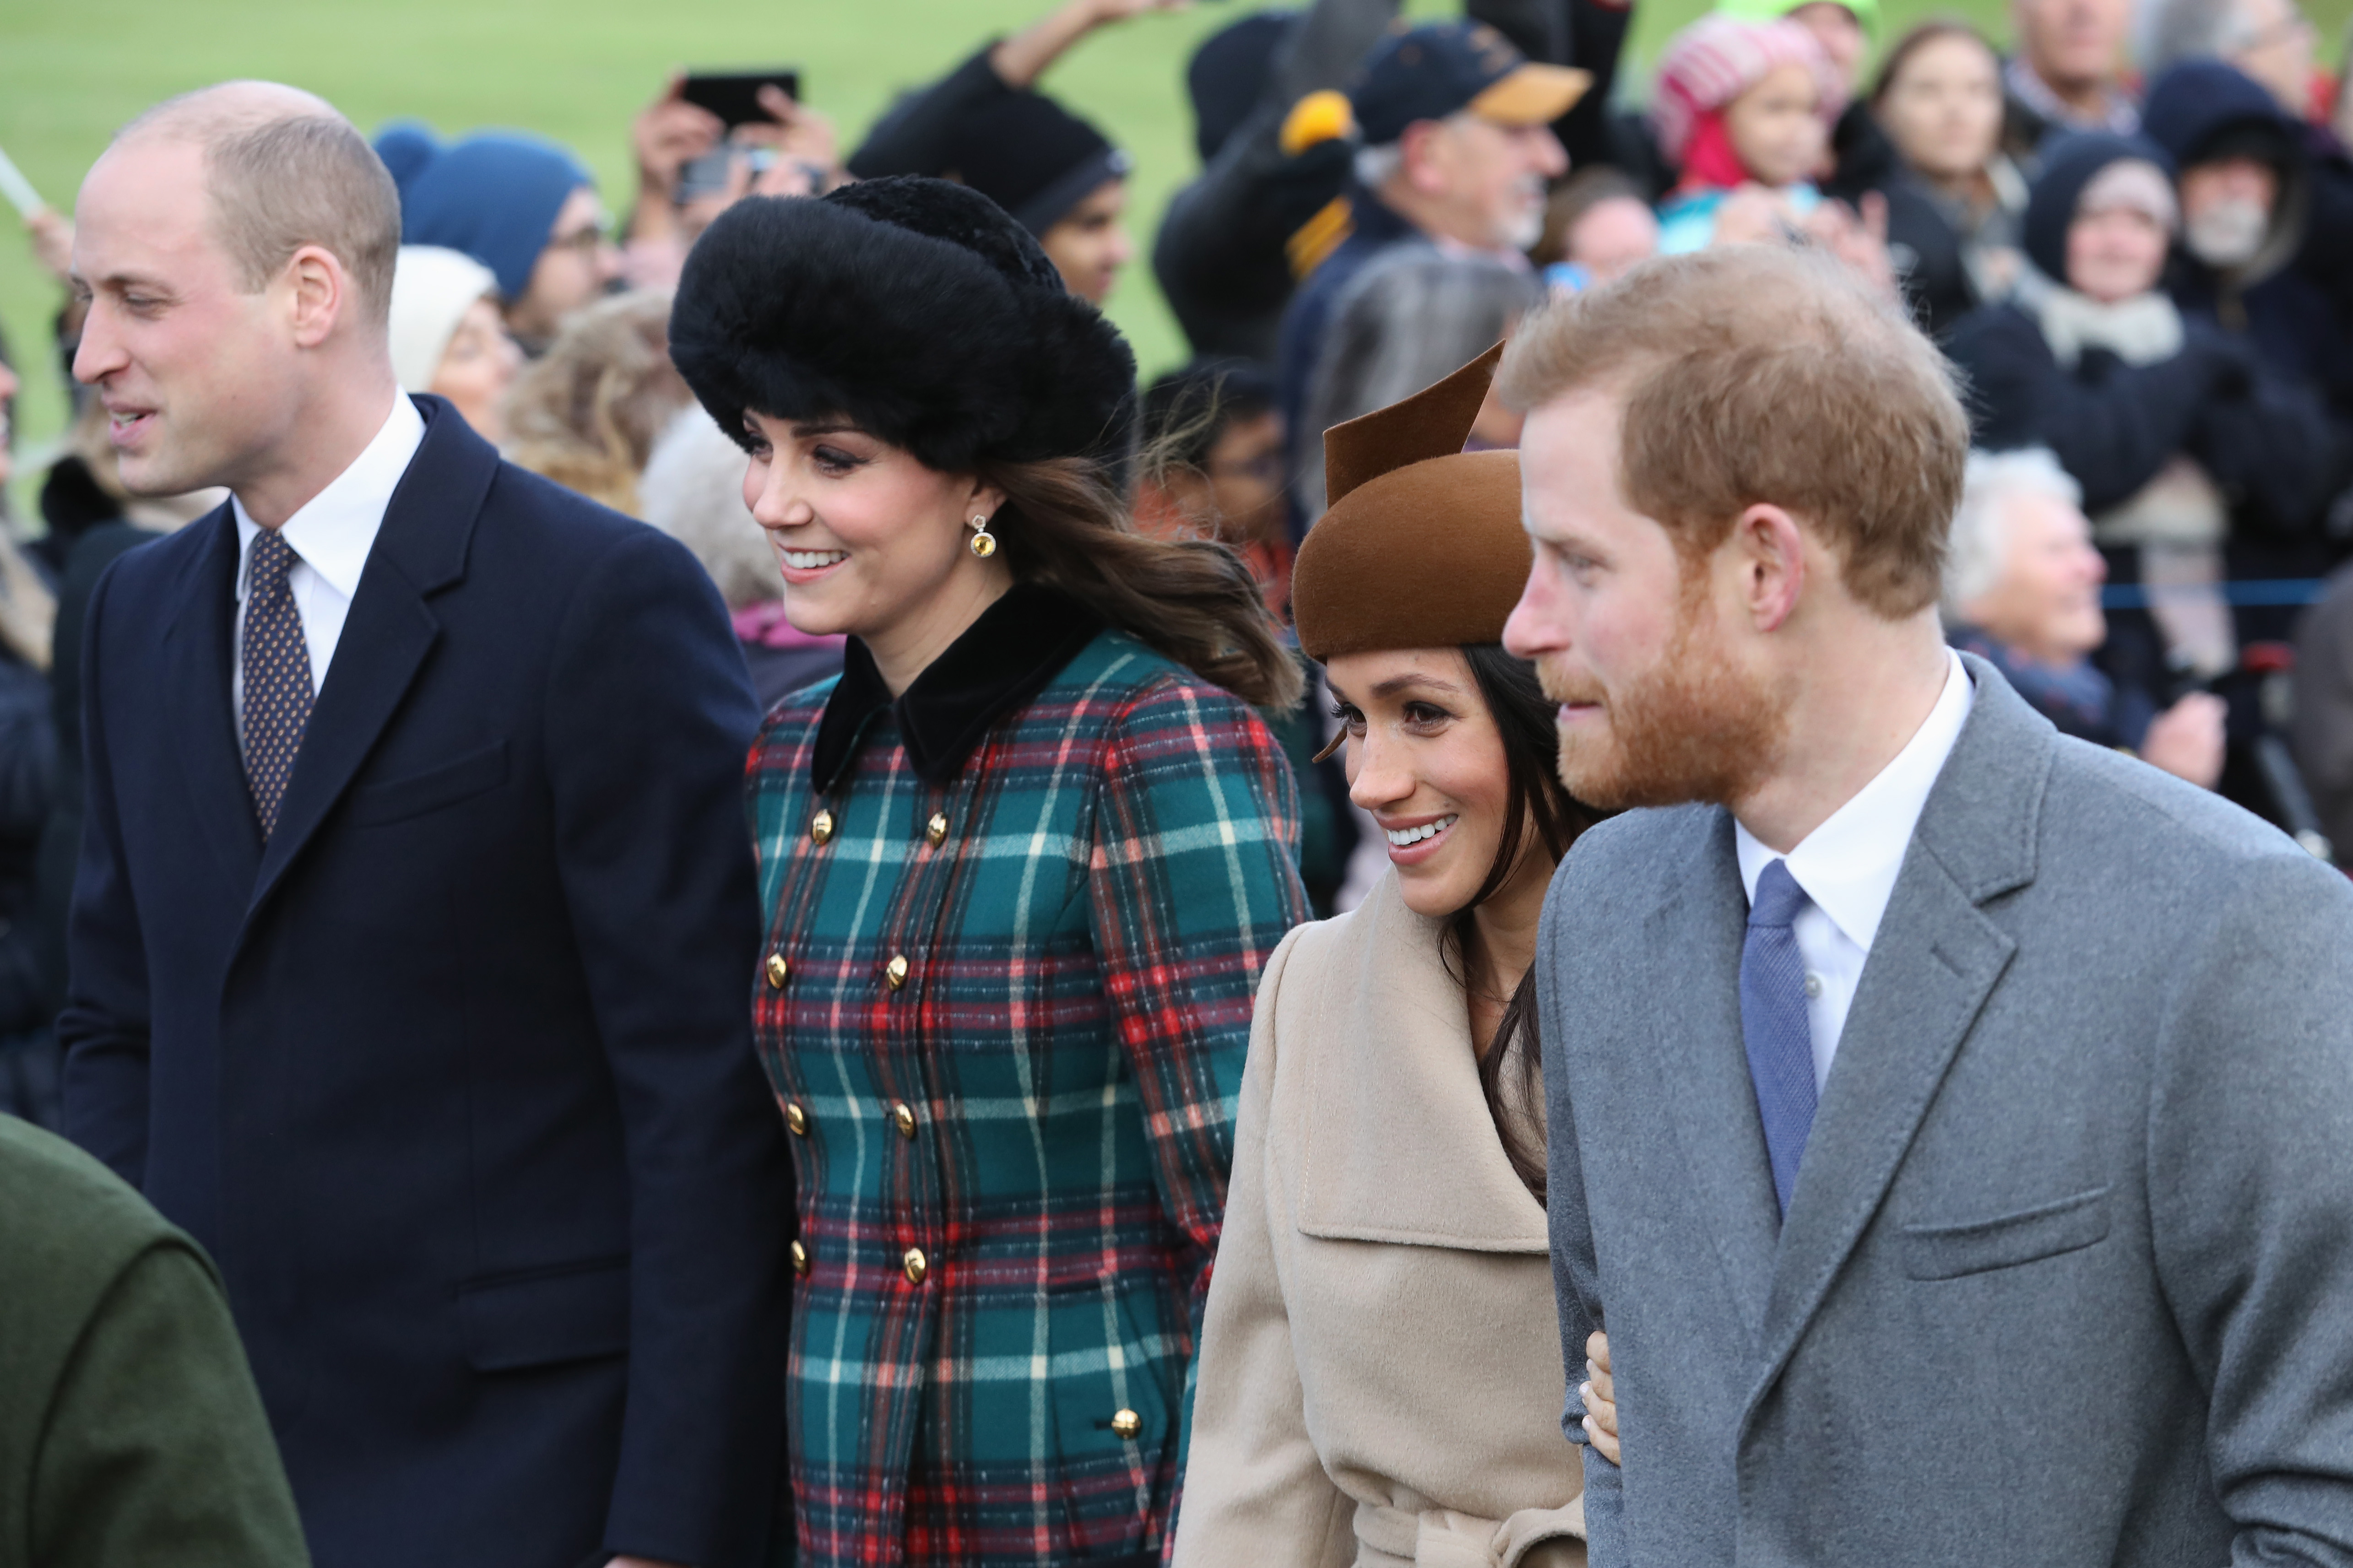 (L-R) Prince William, Duke of Cambridge, Catherine, Duchess of Cambridge, Meghan Markle and Prince Harry attend Christmas Day Church service at Church of St Mary Magdalene on December 25, 2017 in King's Lynn, England.